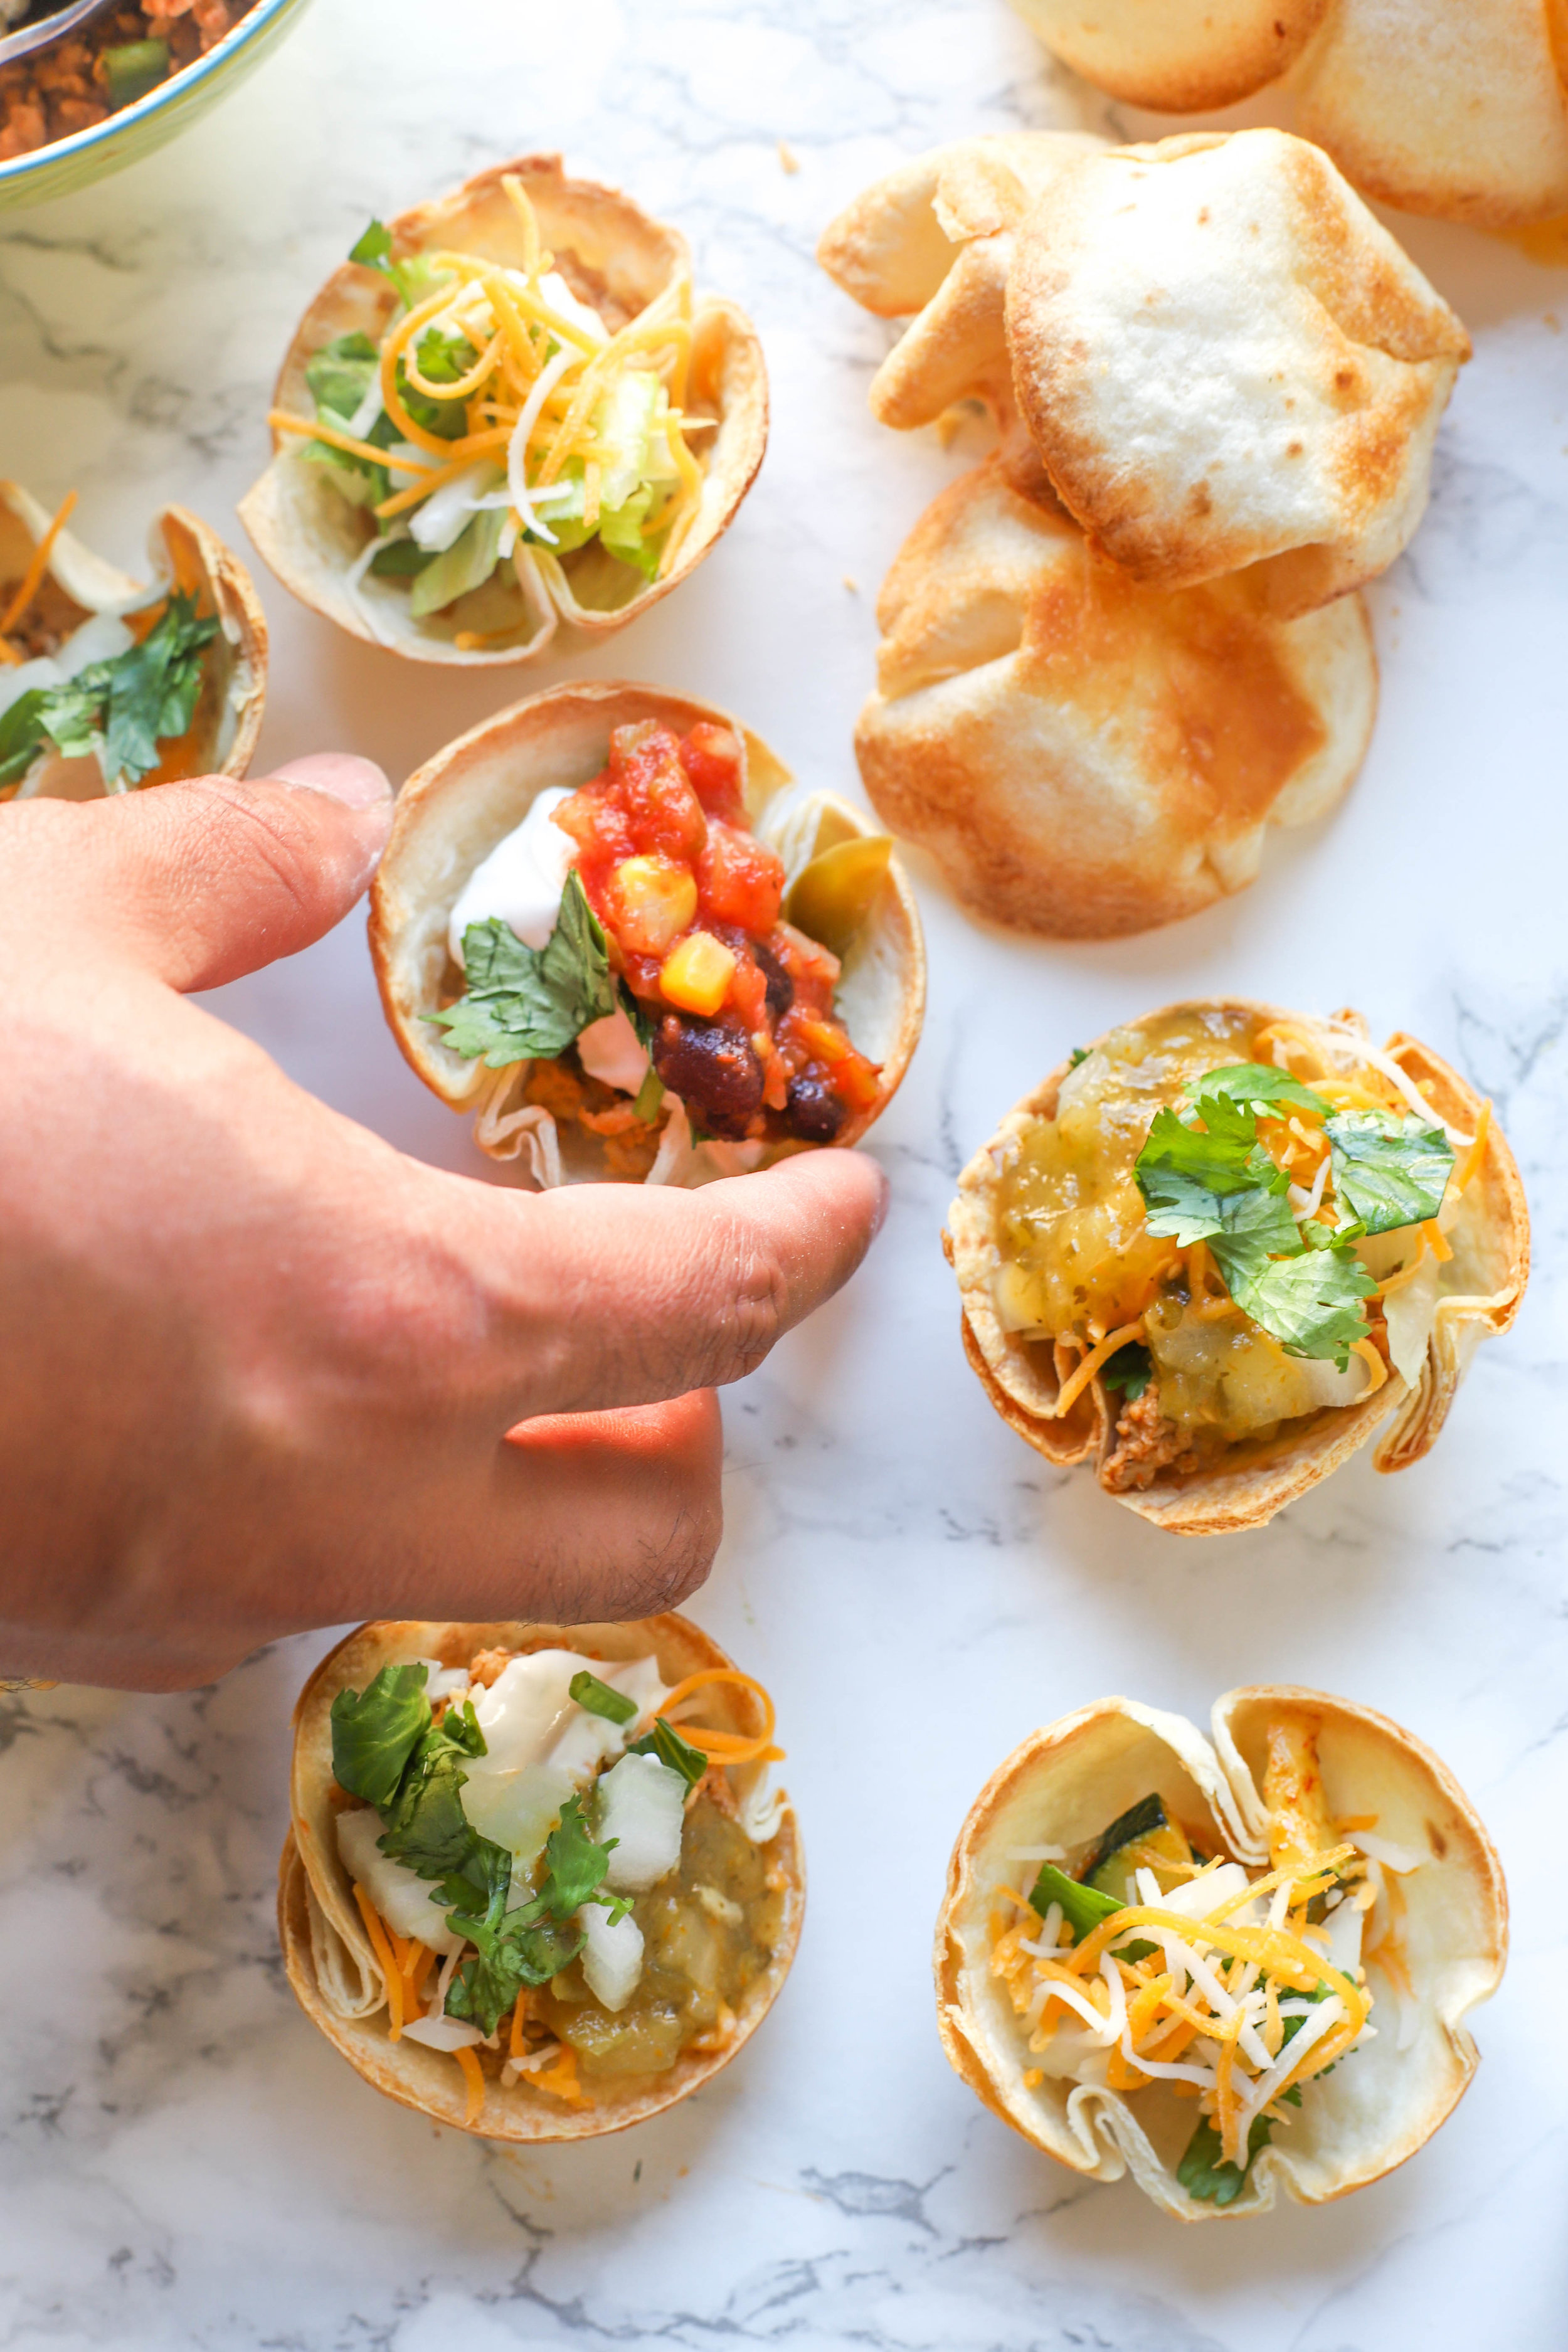 DIY Taco Cups are easy & fun spin on traditional tacos with endless options for everyone including vegetarians, vegans, and gluten-free individuals!